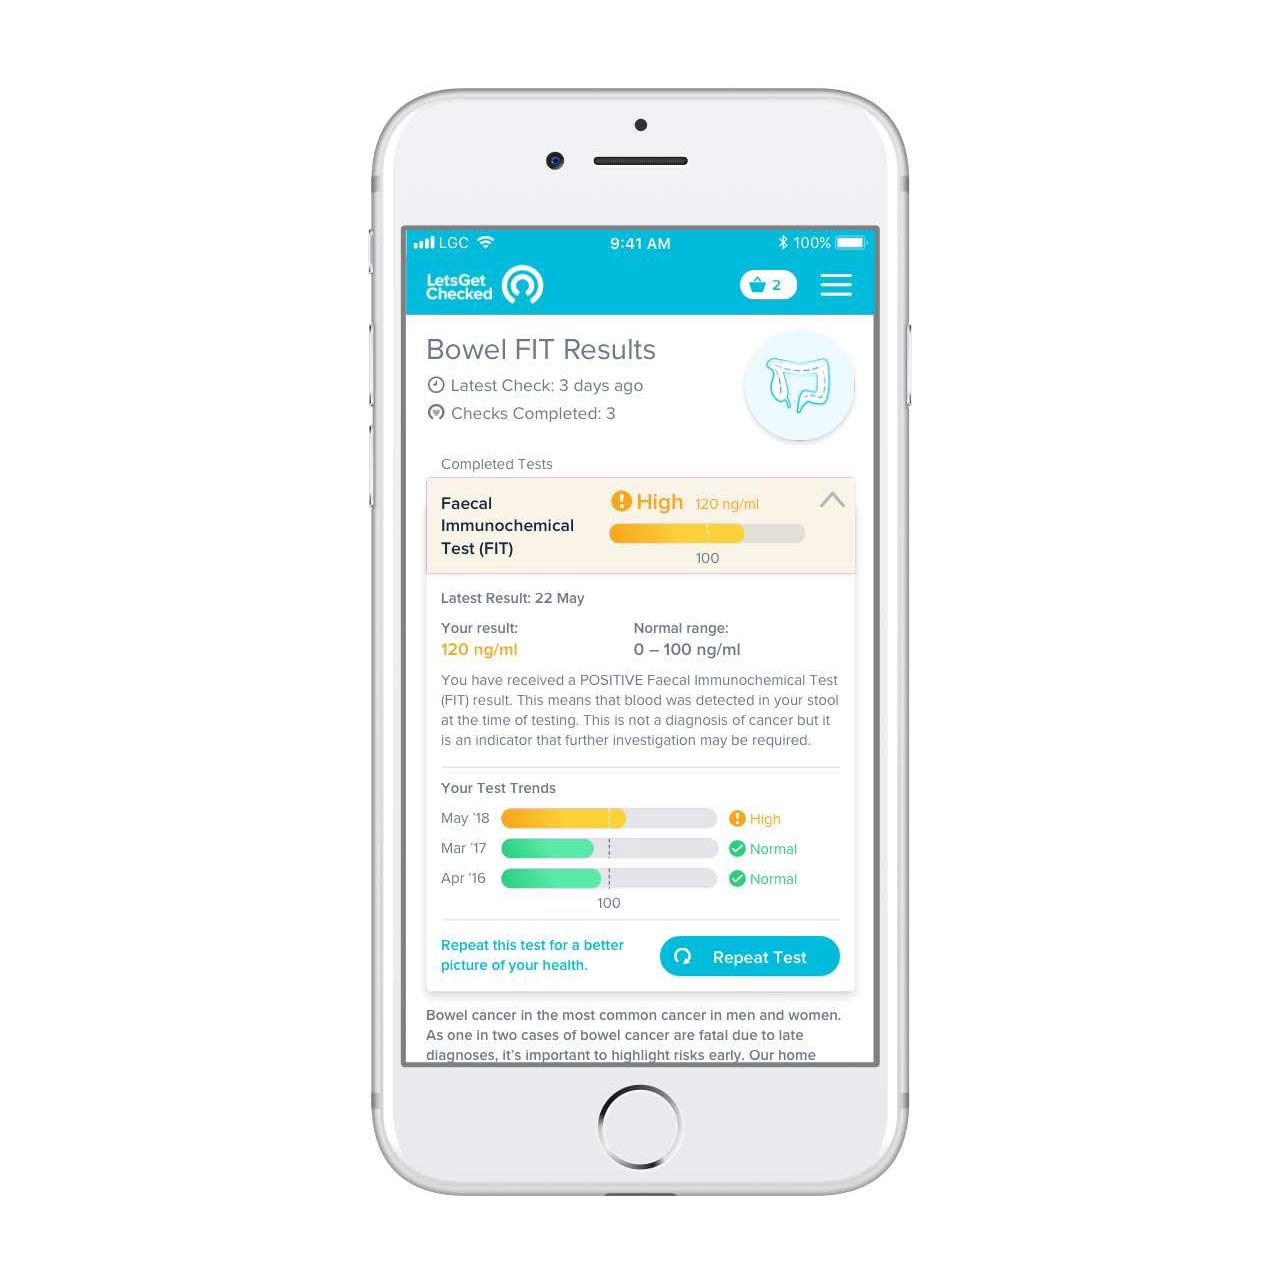 Diabetic Check - Accredited Lab at Home, Accurate Results- at Home HbA1c Test with Online Results in 5 Days - 100% Private and Secure by LetsGetChecked (Image #3)